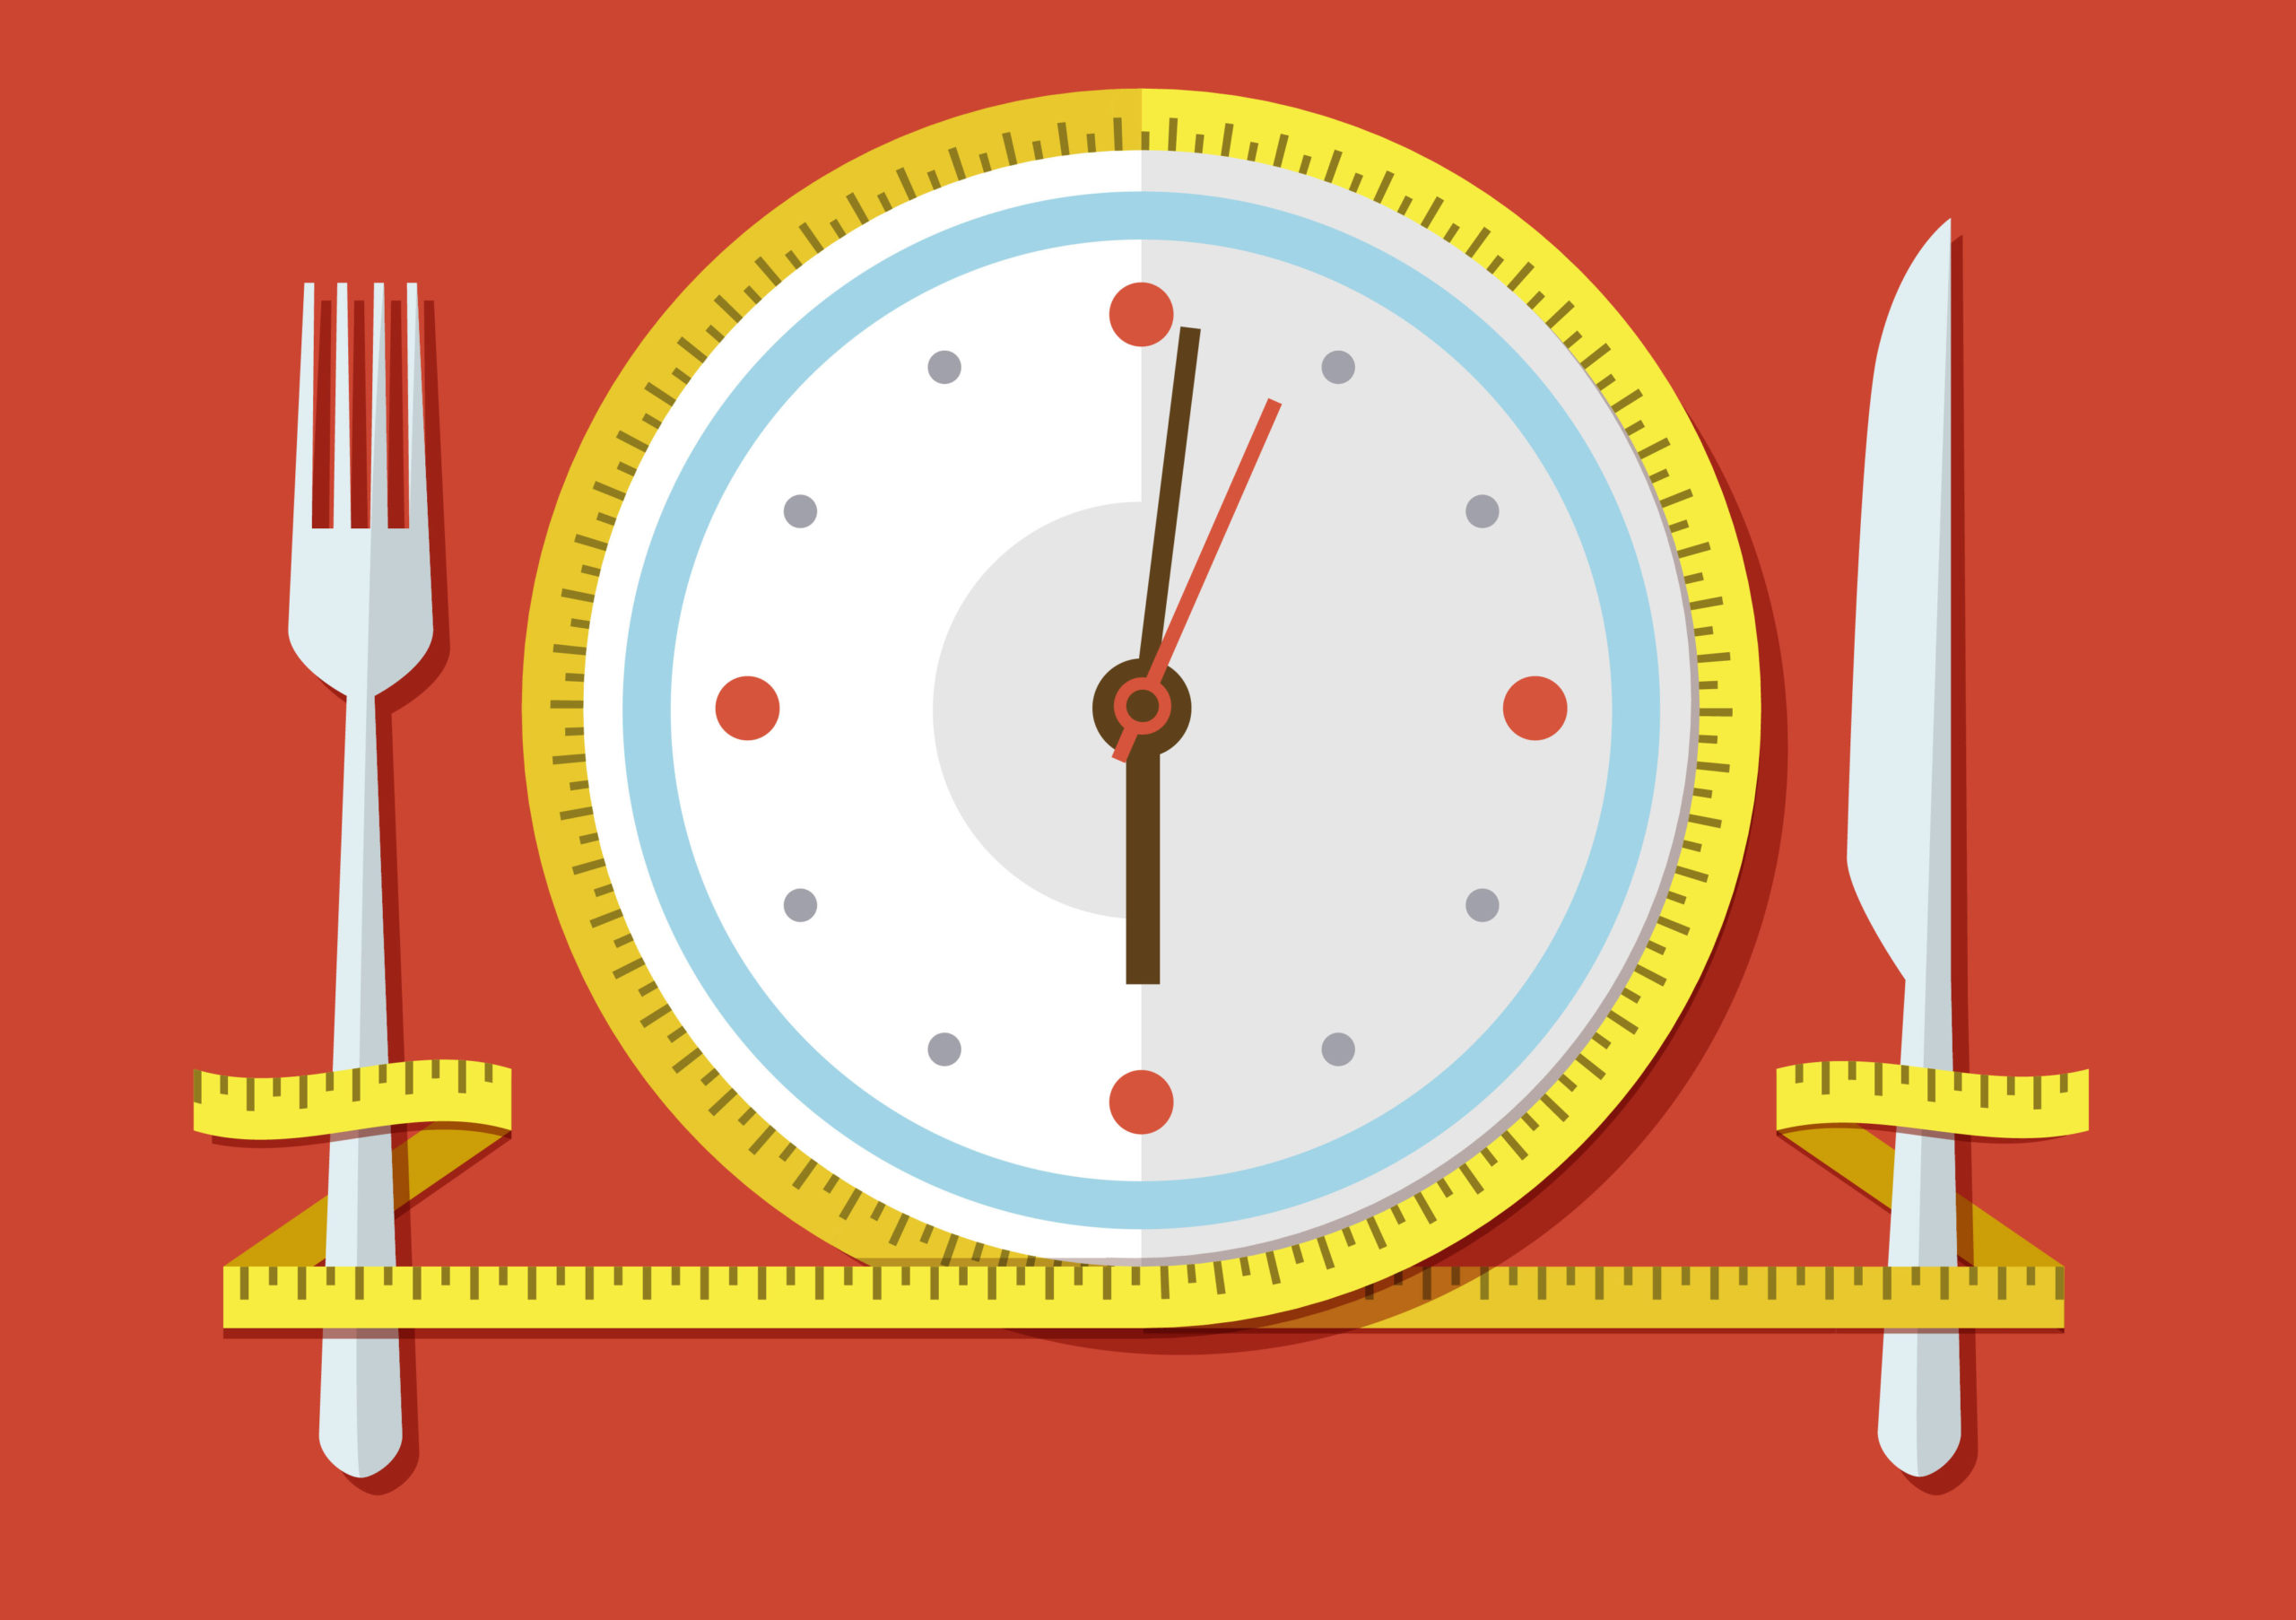 Intermittent Fasting Concept of Meal Timing